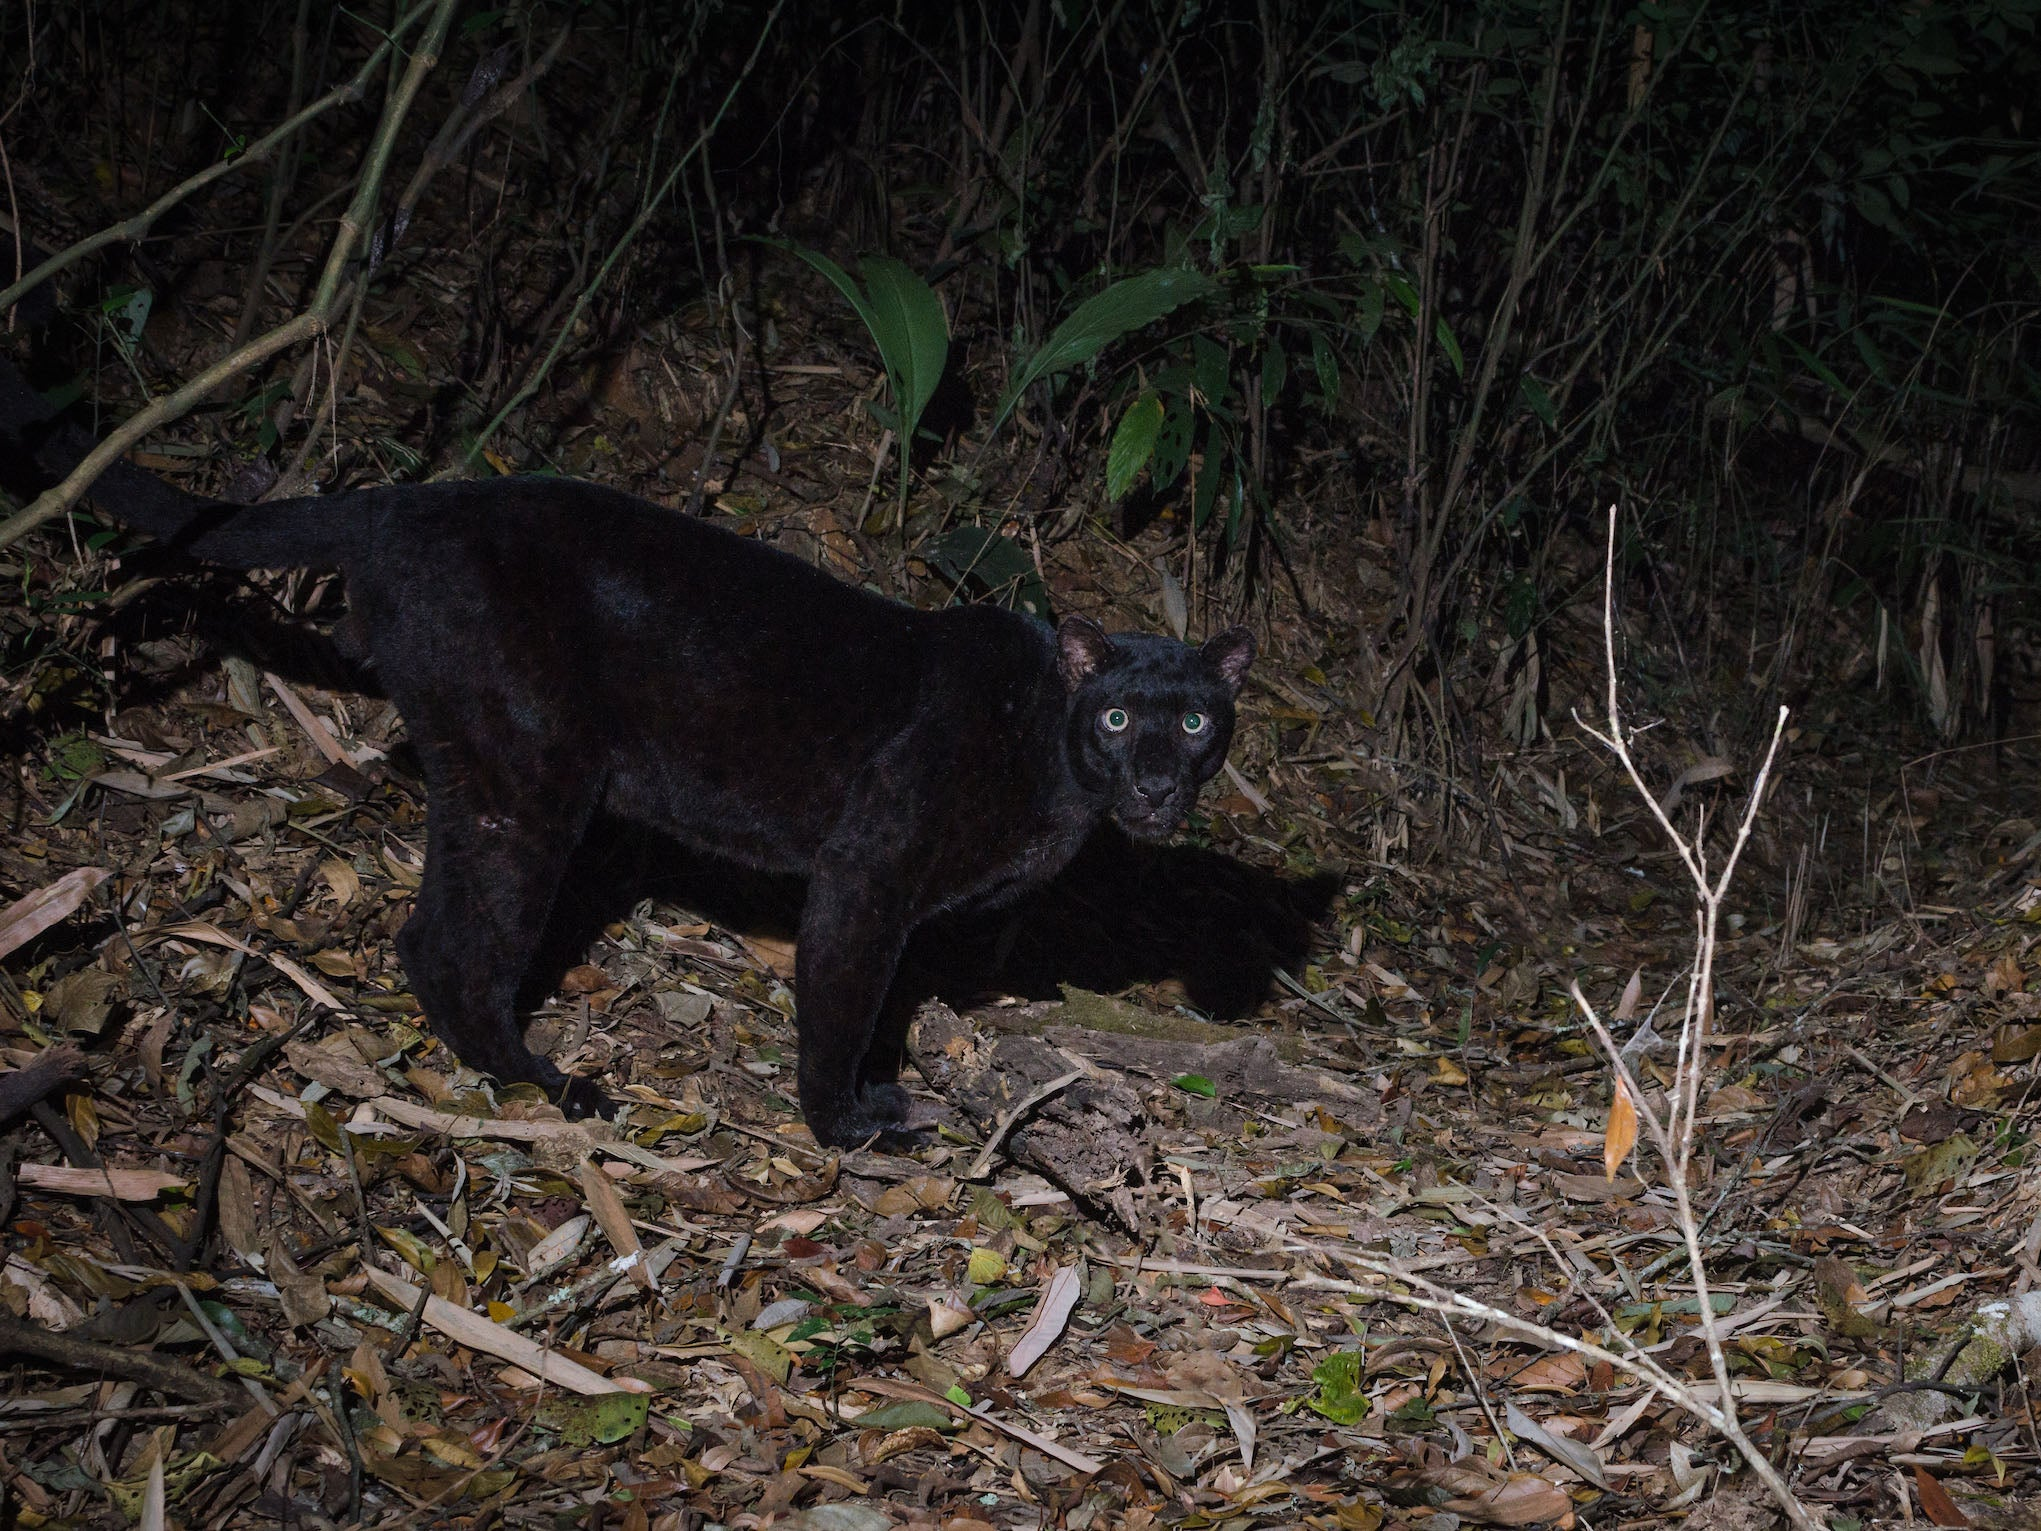 Thai company boss 'caught poaching black panther' plans to